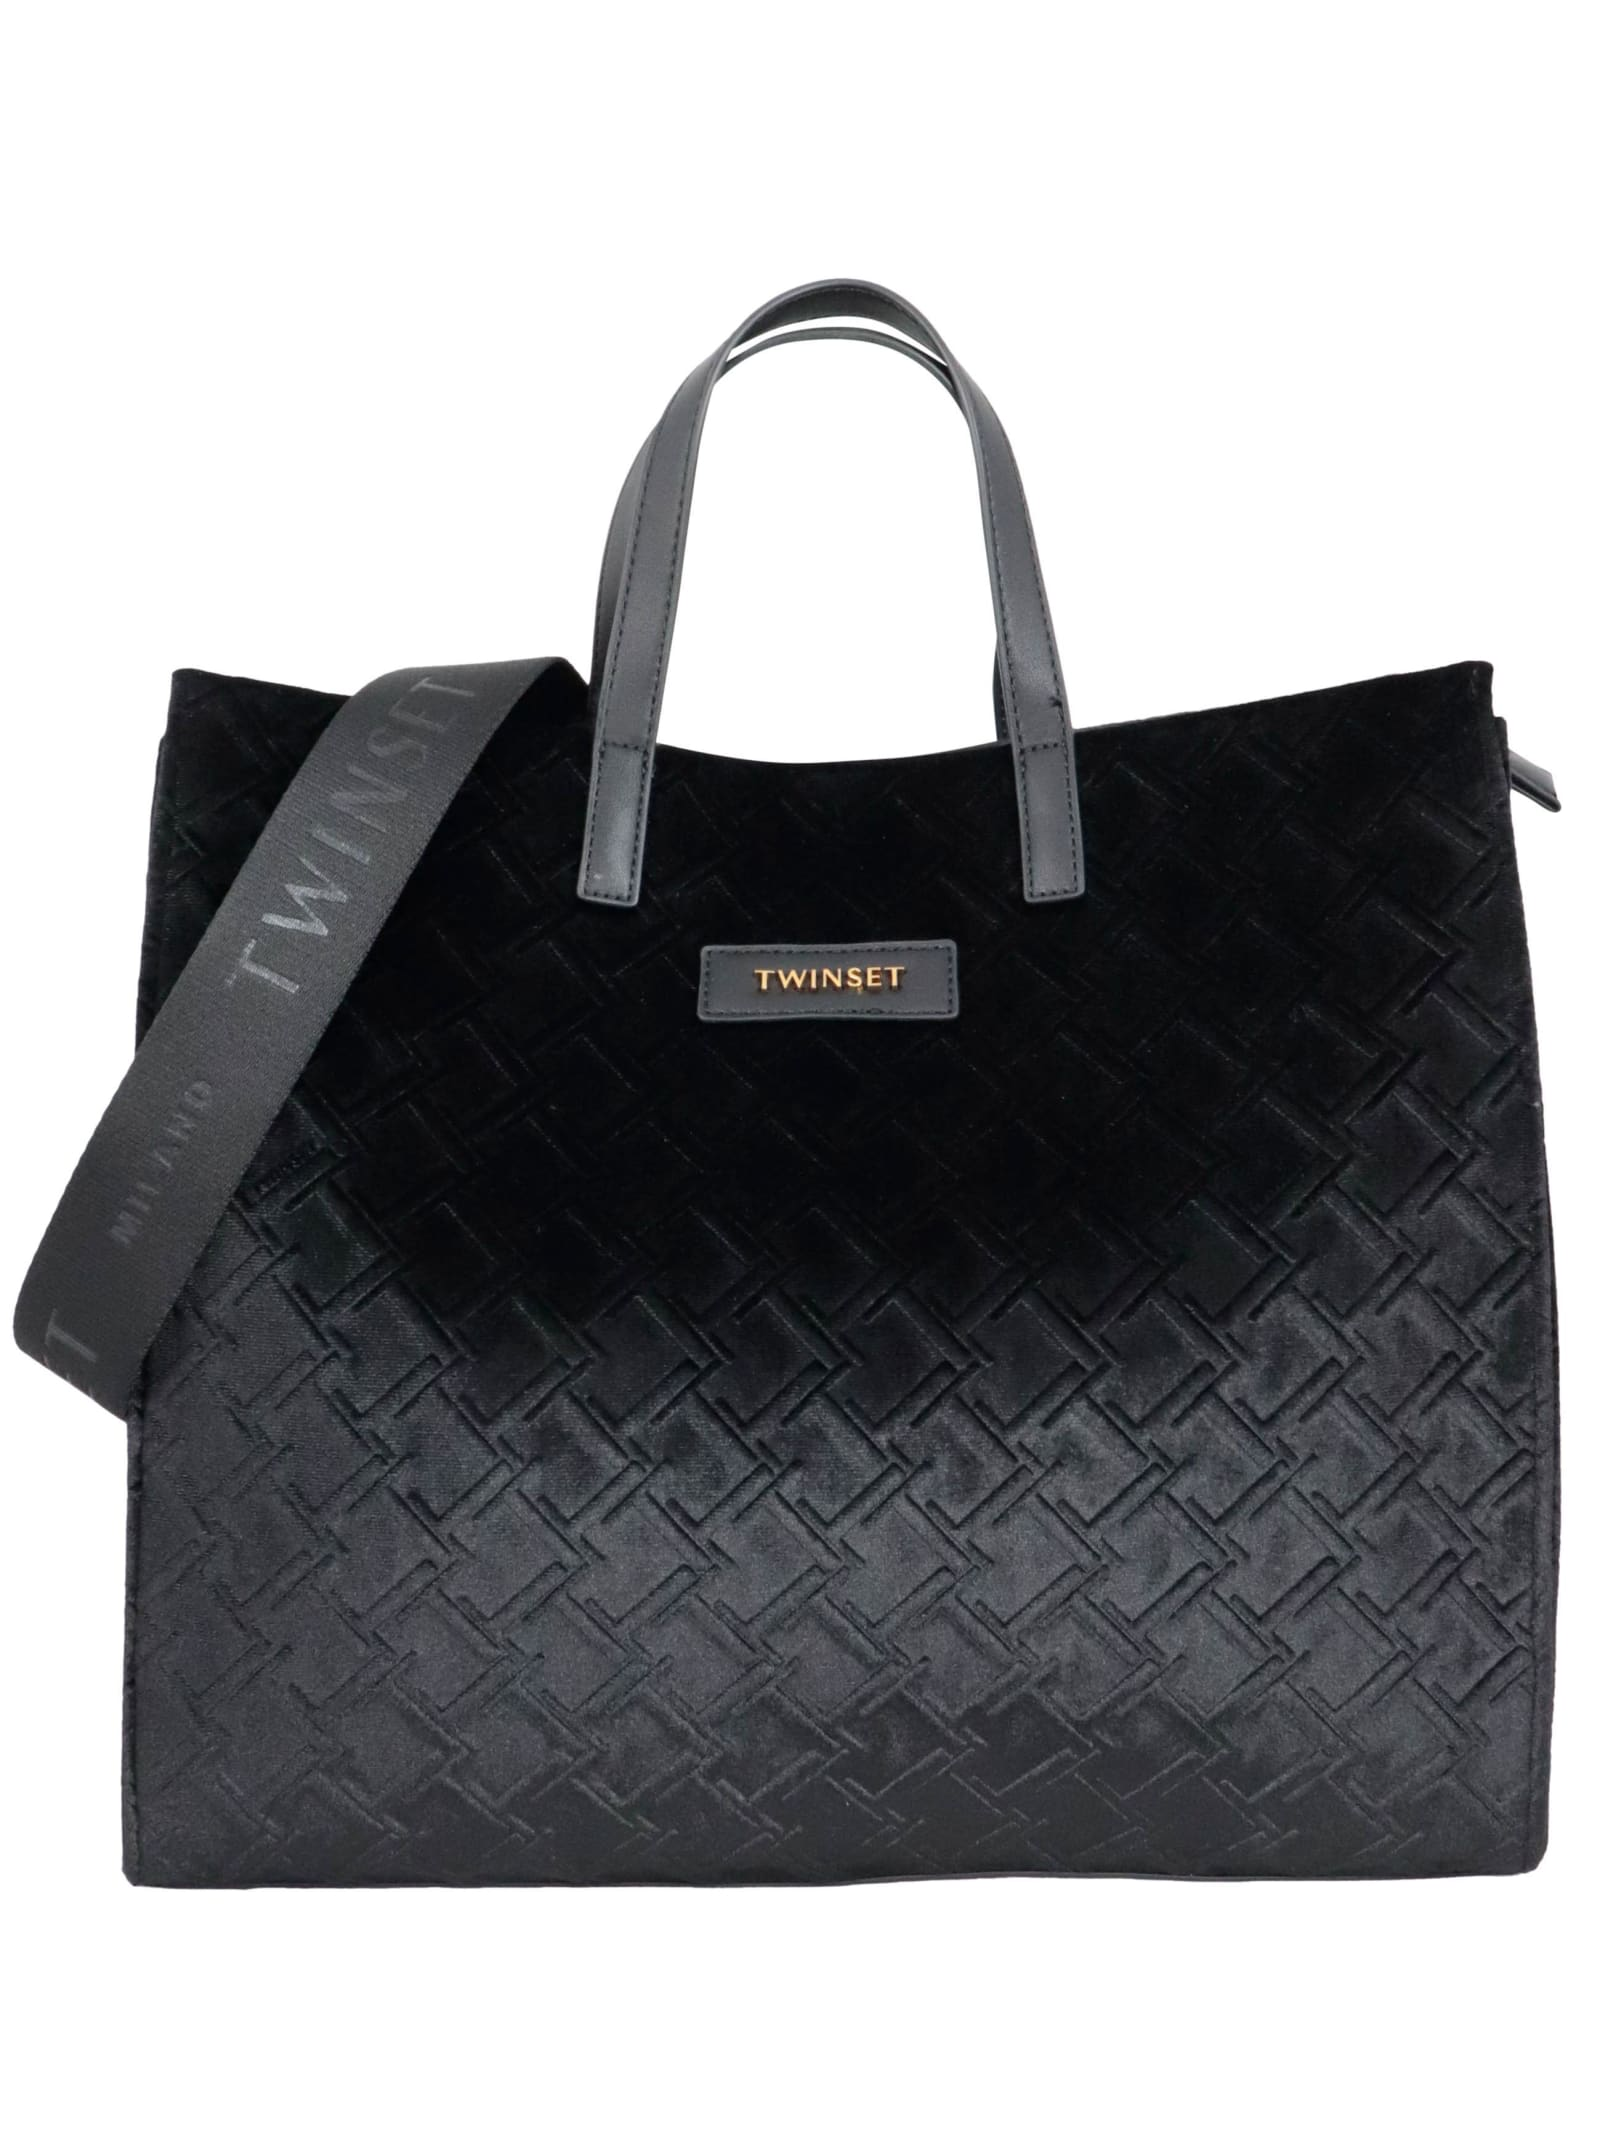 Twinset 100 Pvc Tote In Black